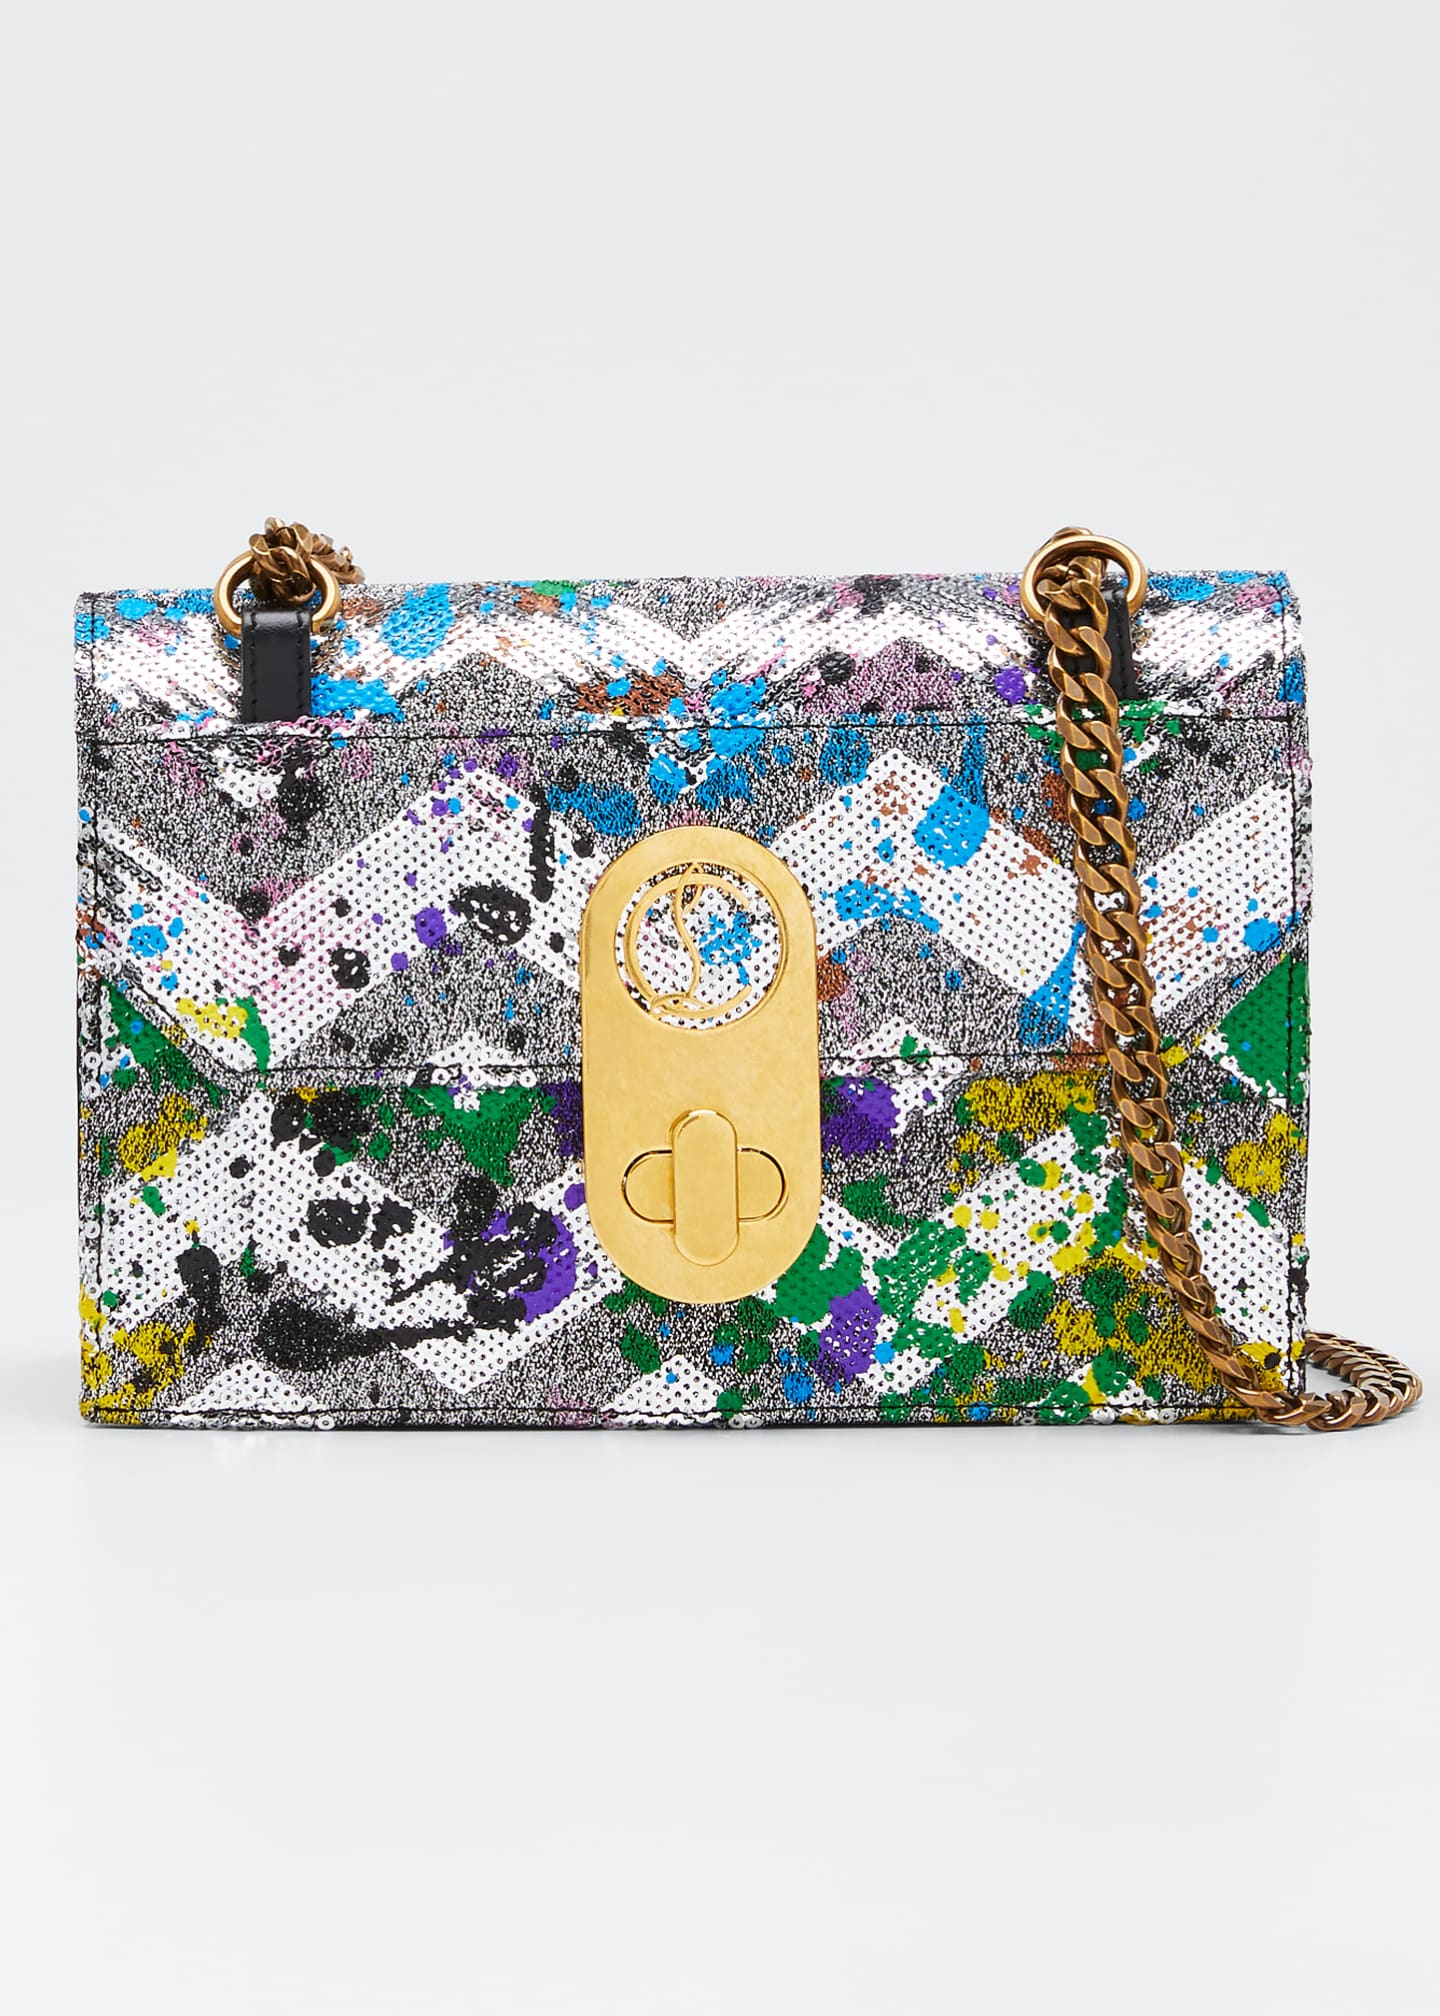 Christian Louboutin Elisa Small Paillette Splash Shoulder Bag